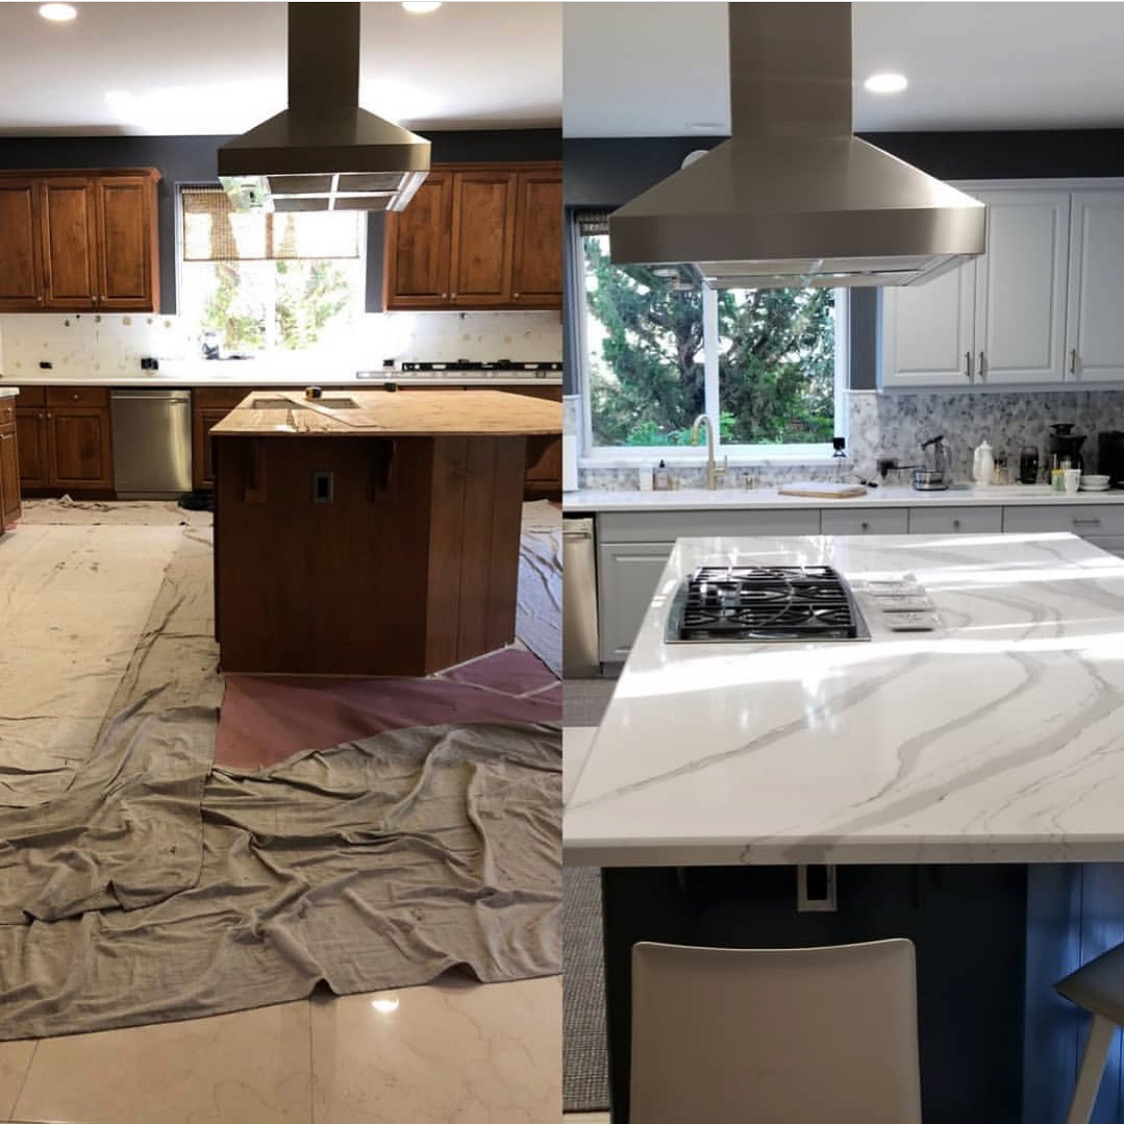 designed by ohan hazar— new countertops and backsplash using same cabinets with a coat of paint